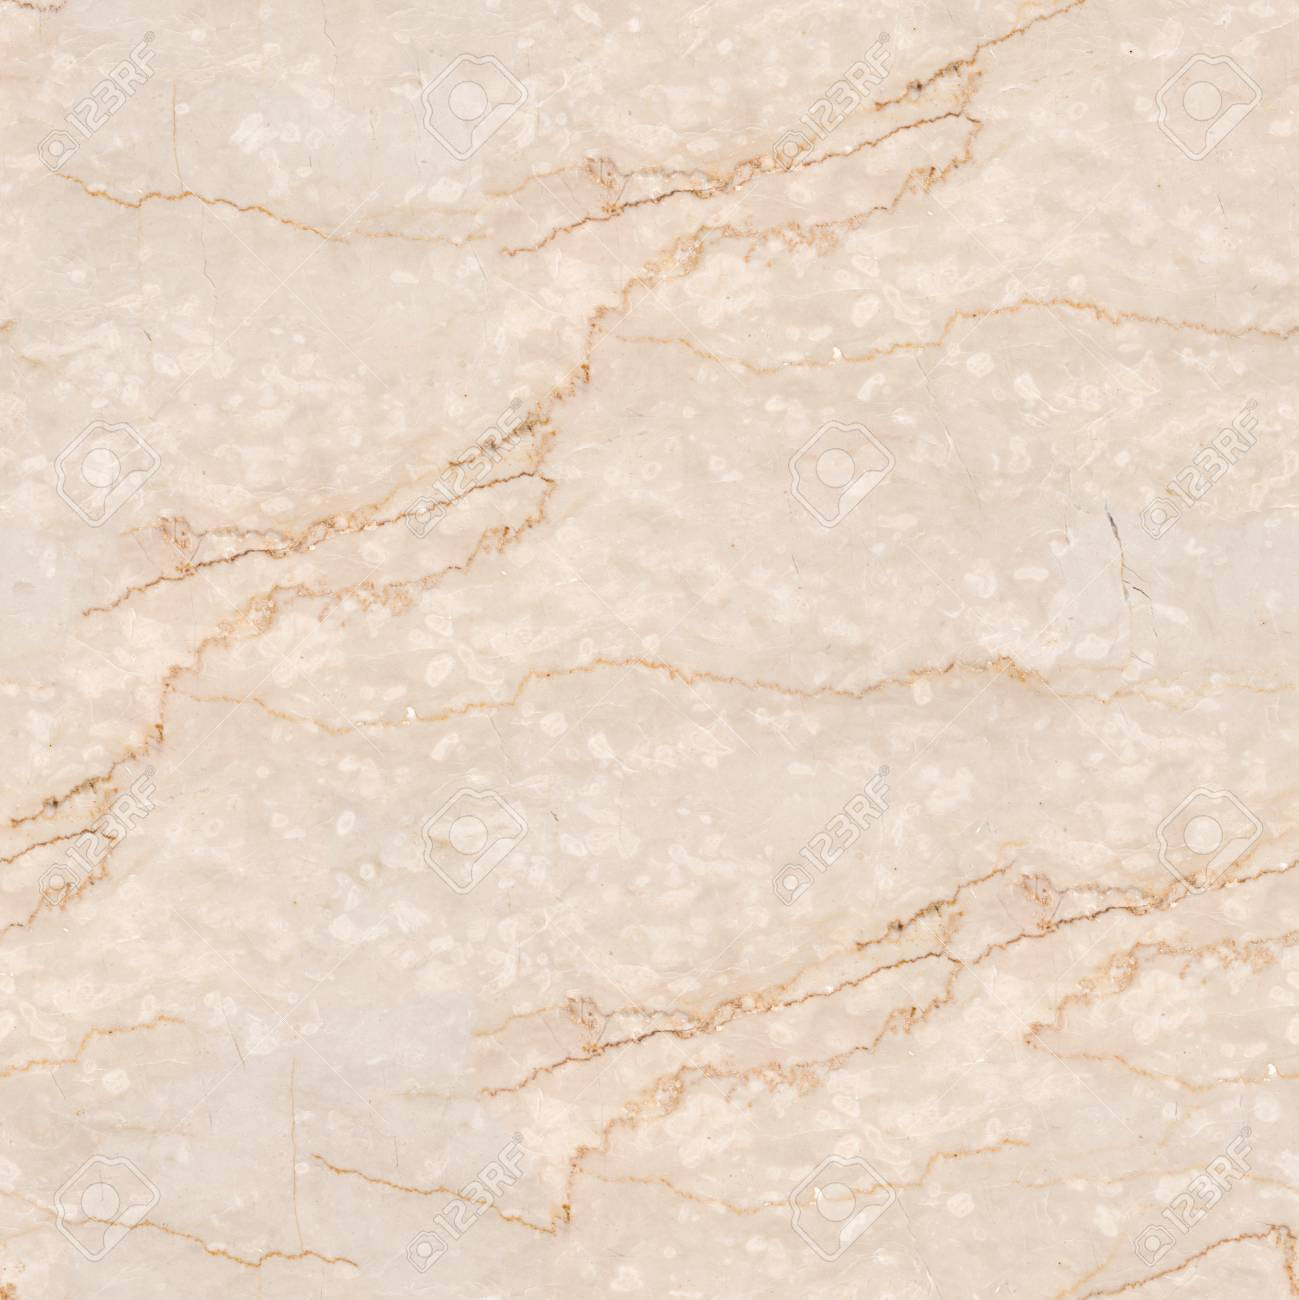 Close Up Of Marble Texture Seamless Square Background Tile Ready High Resolution Photo